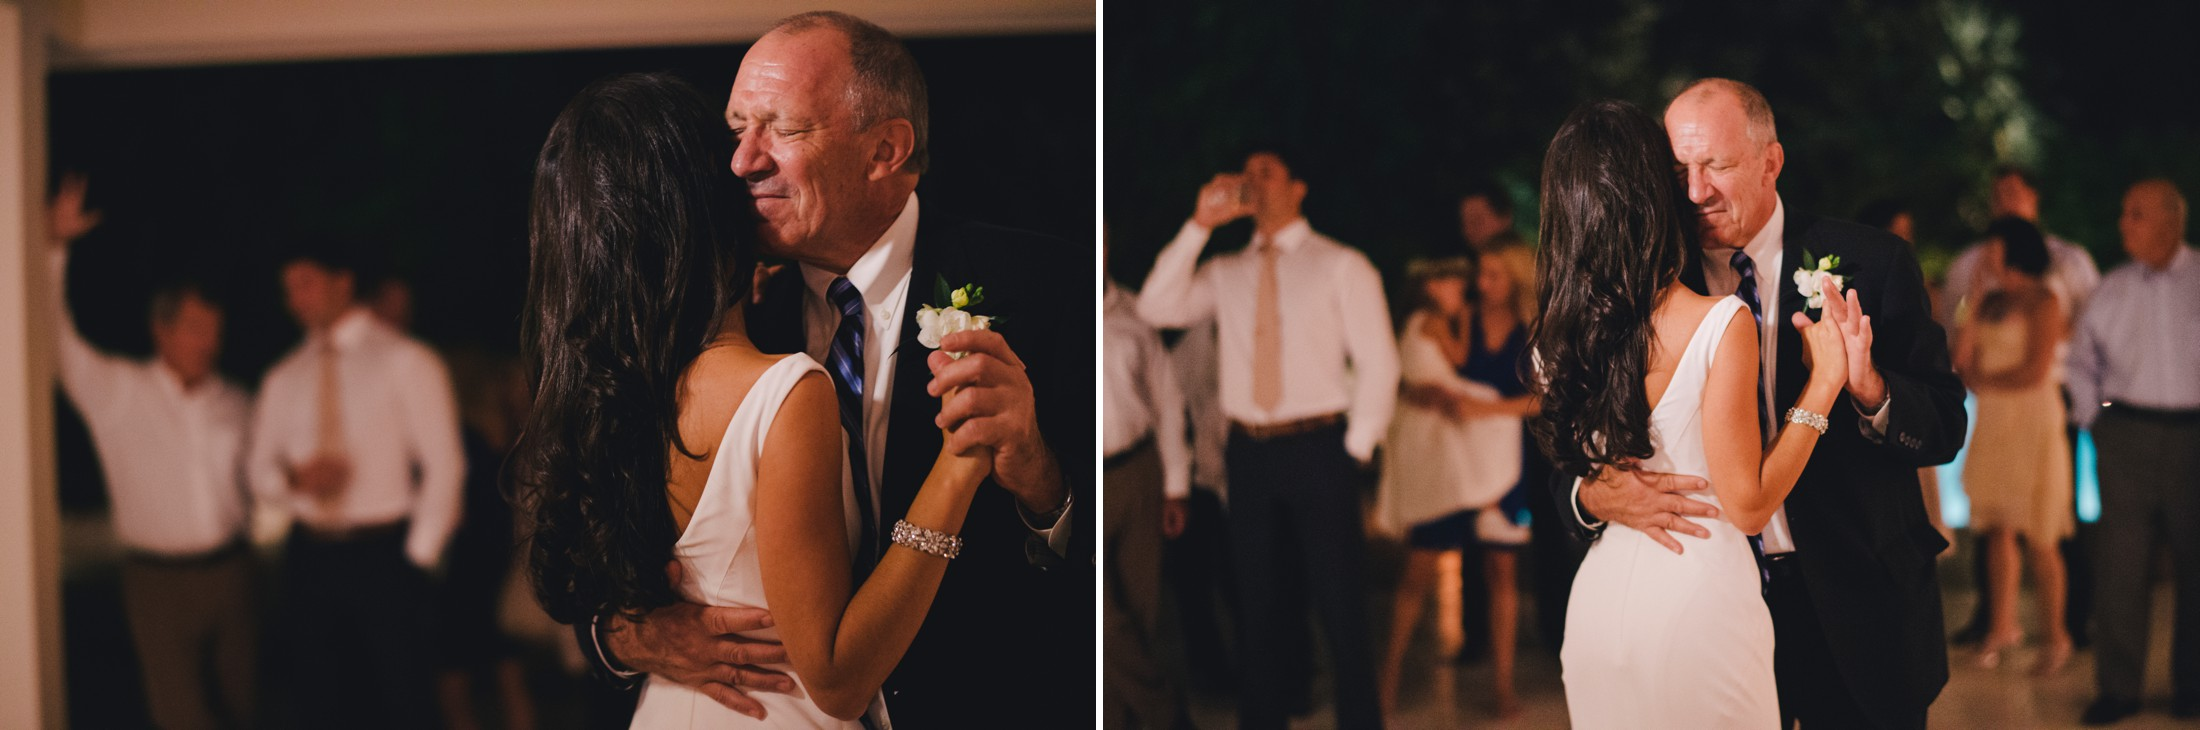 wedding in sorrento the bride dancing with her father